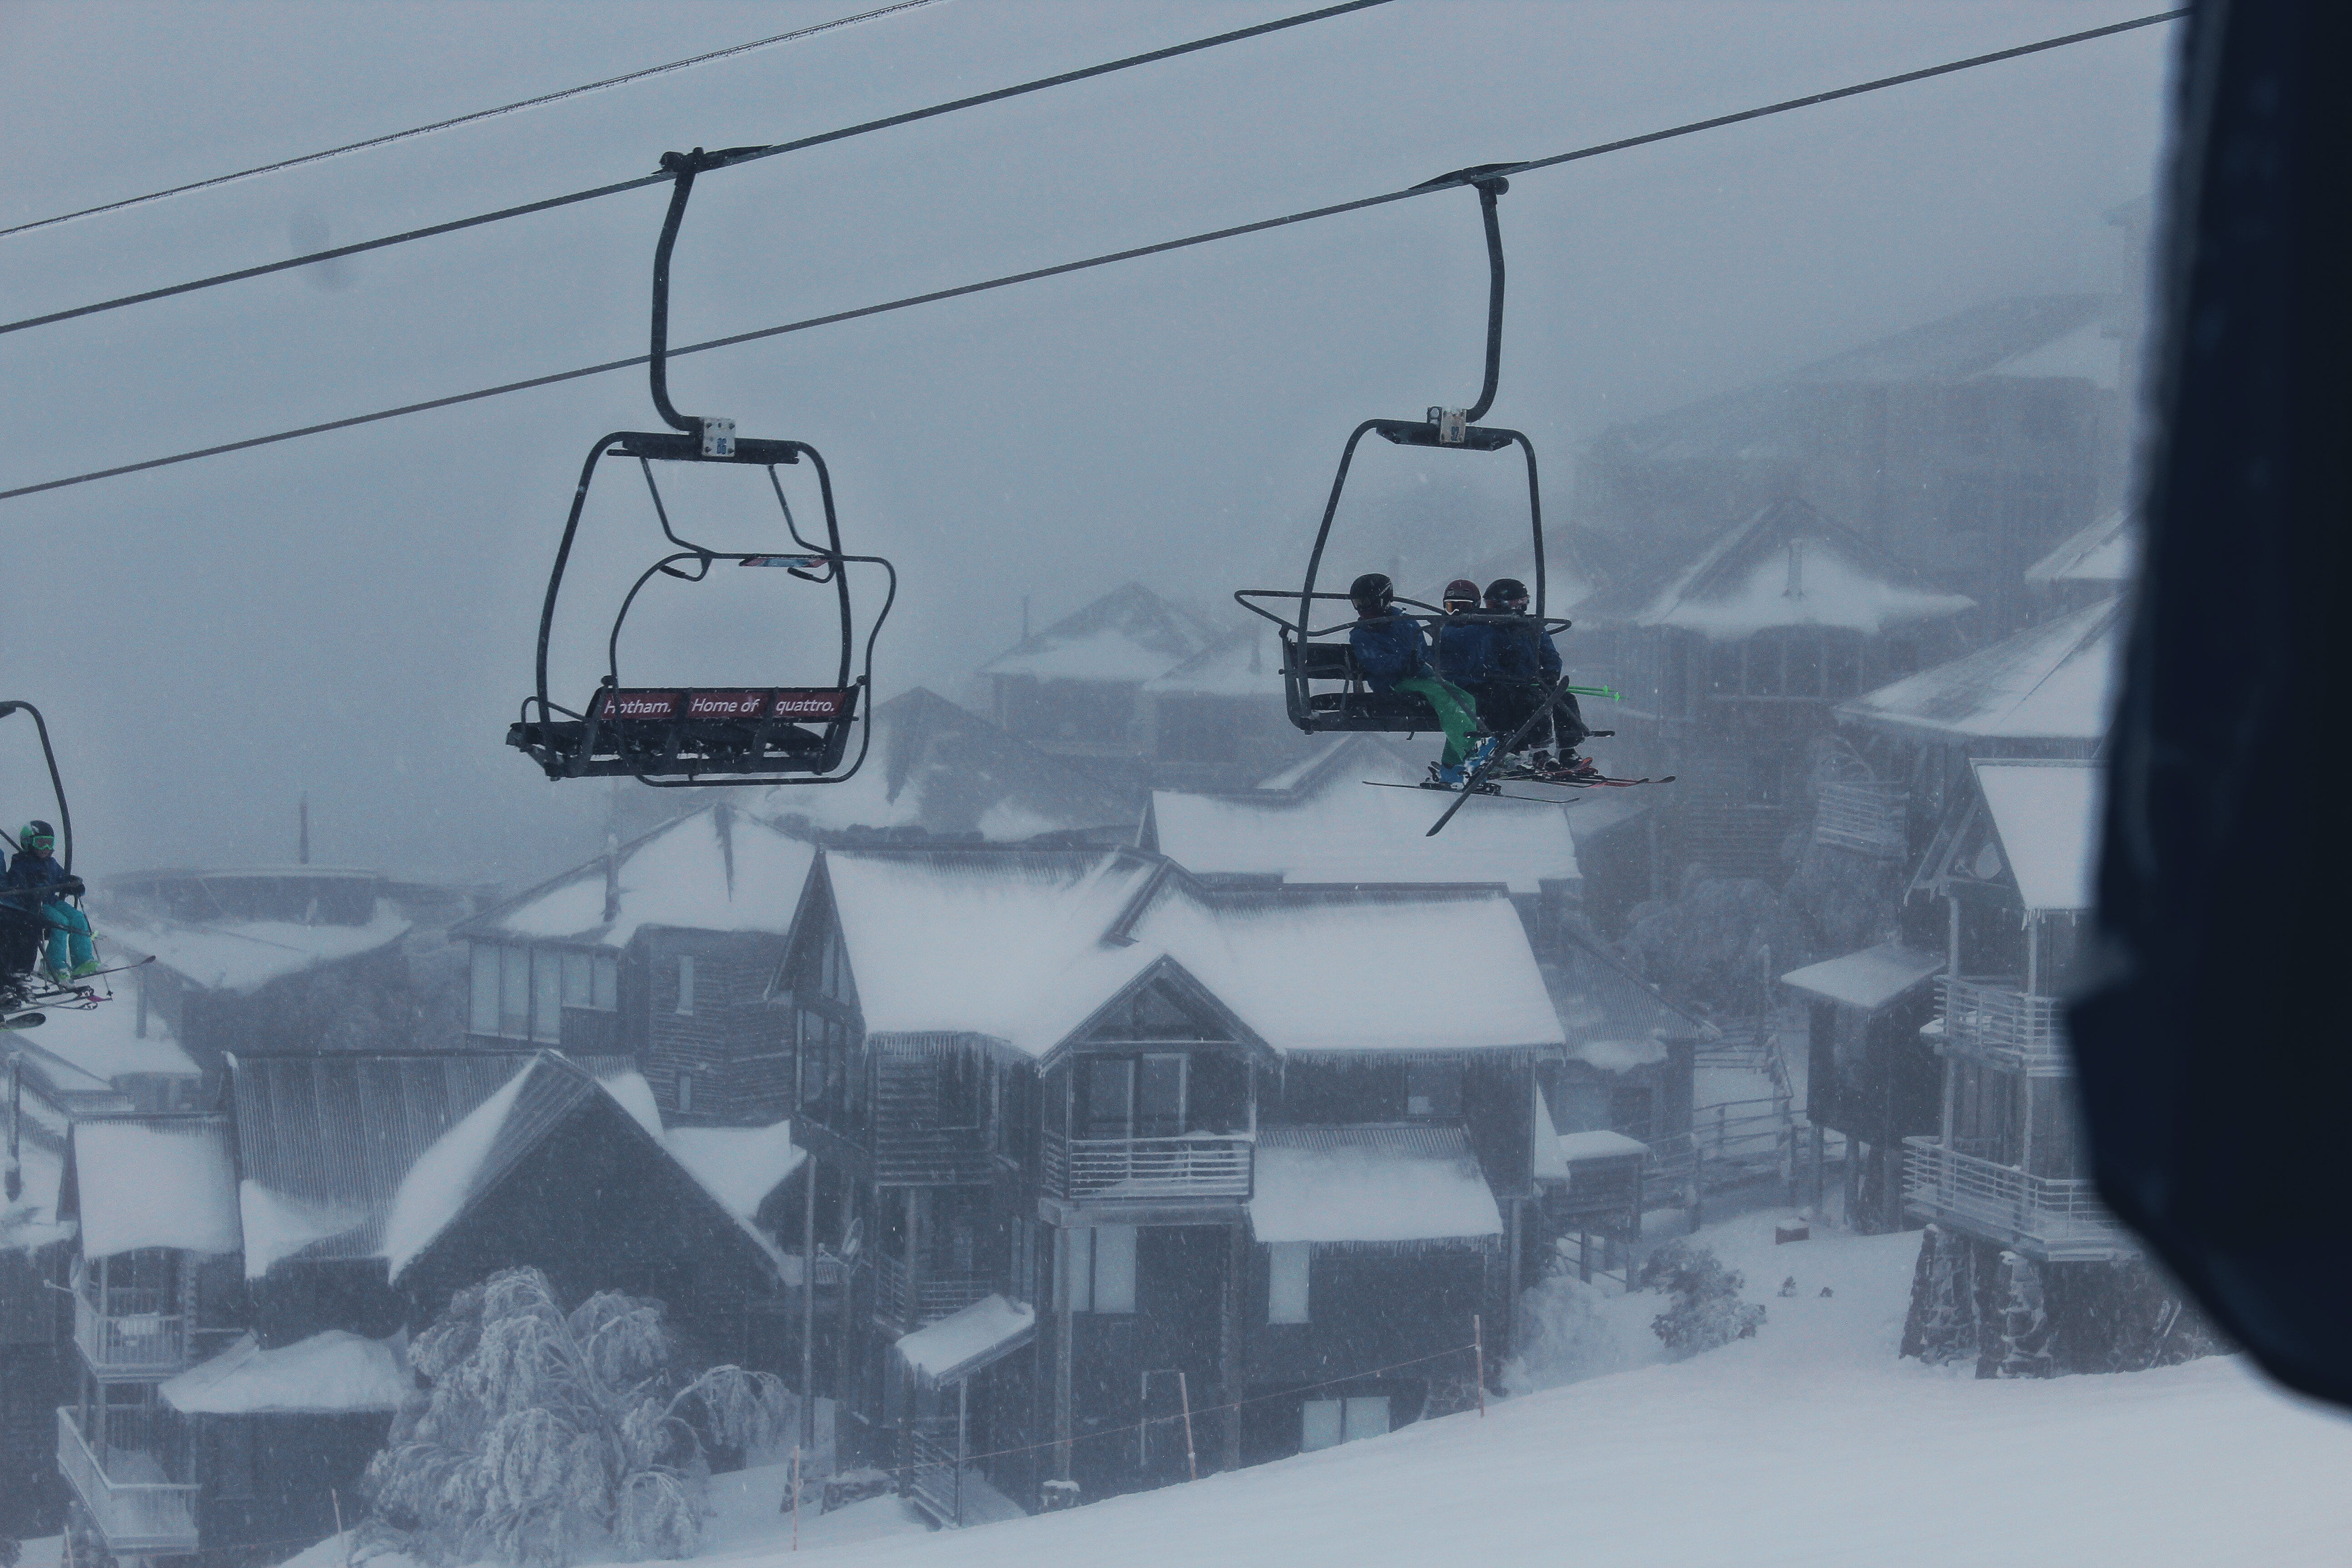 Free stock photo of architecture, chairlift, children, cold